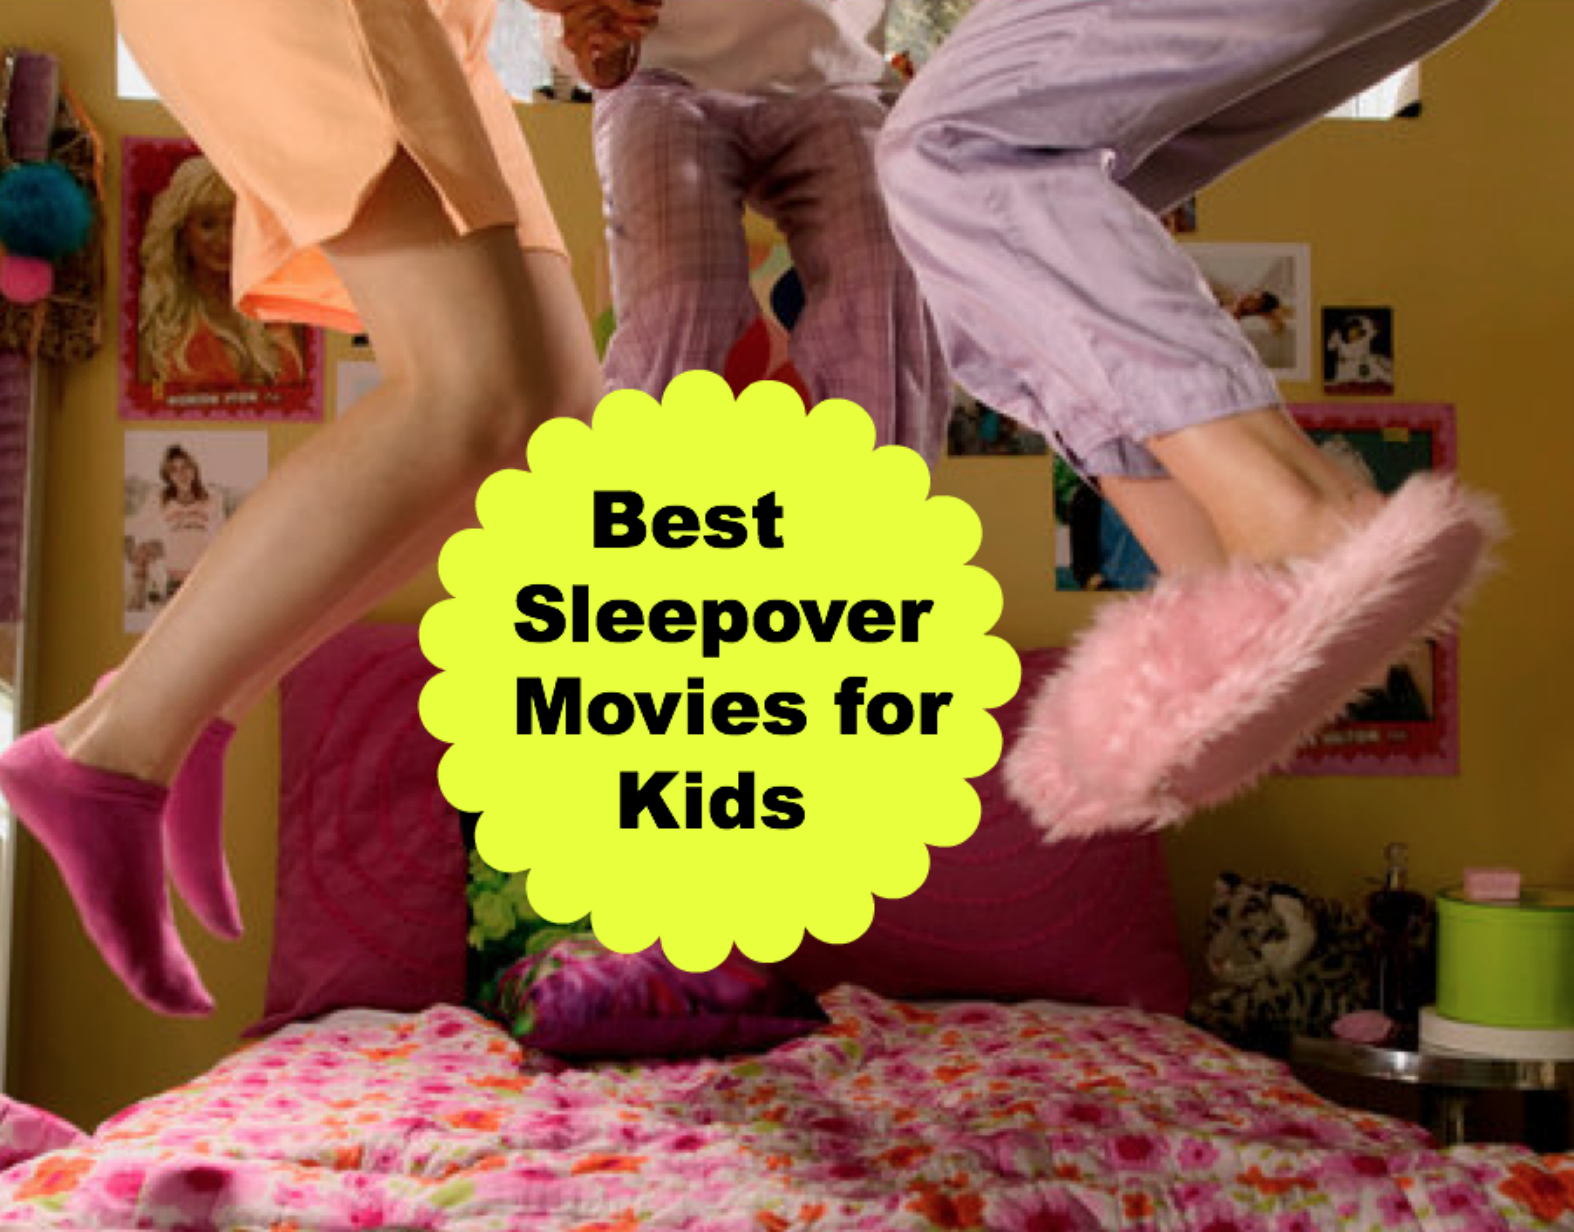 Best Sleepover Movies